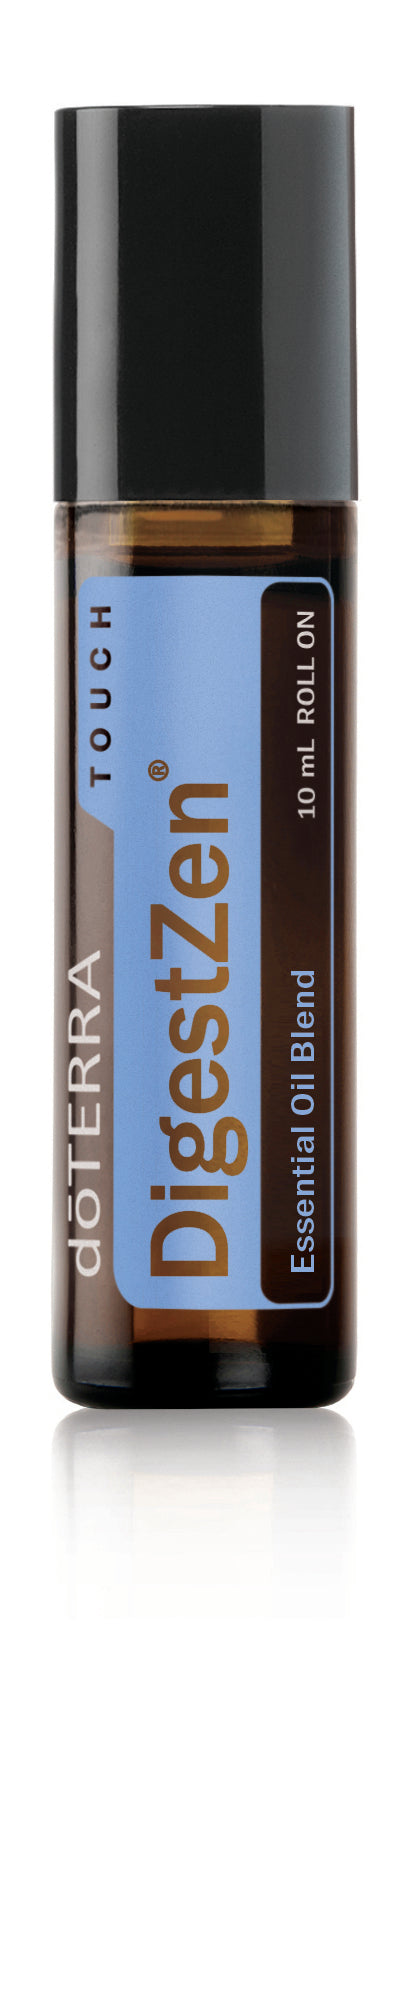 dōTERRA DigestZen Touch 10ml - CUSTOM AND ESSENTIALS